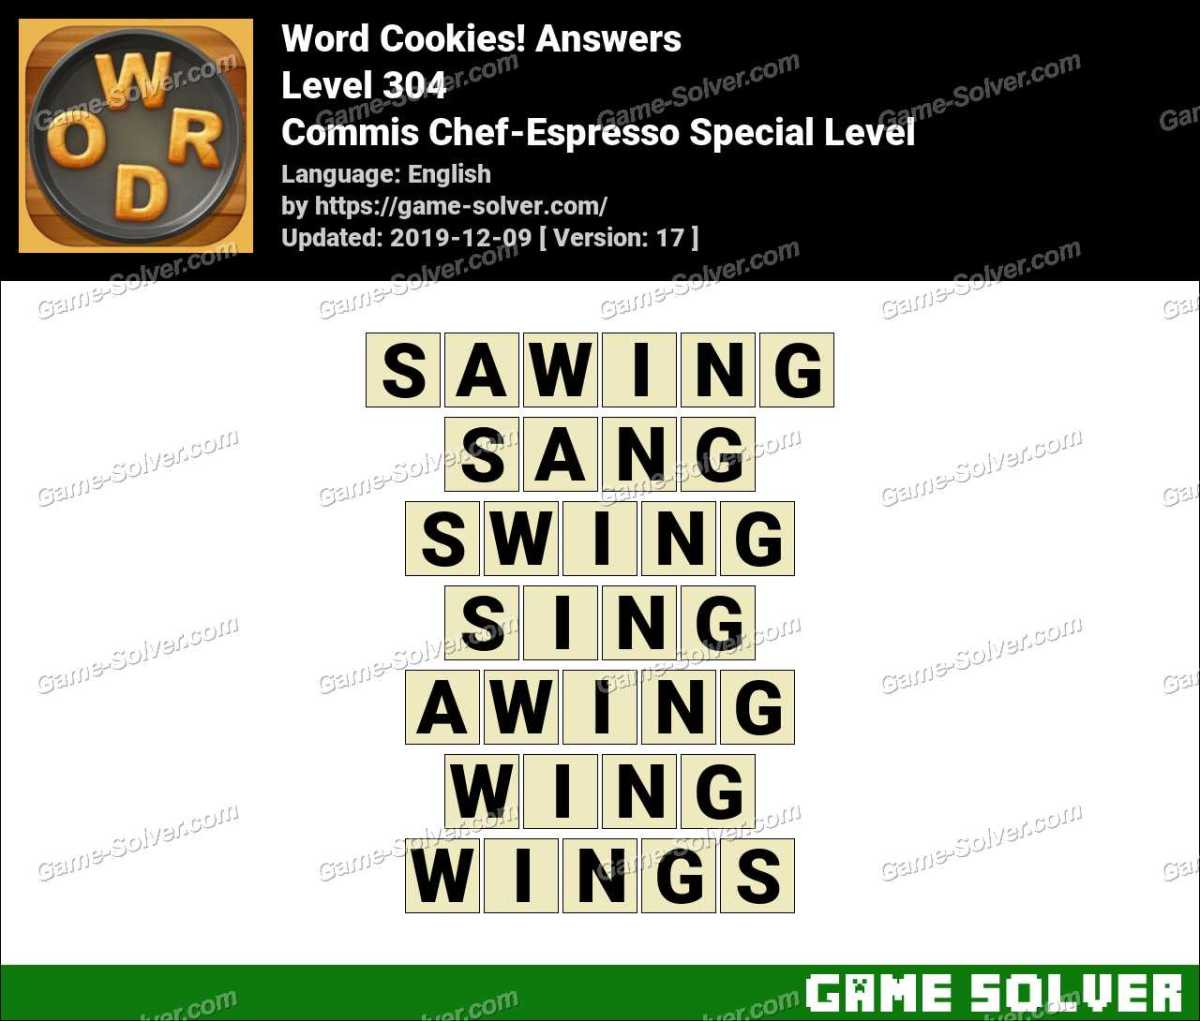 Word Cookies Commis Chef-Espresso Special Level Answers